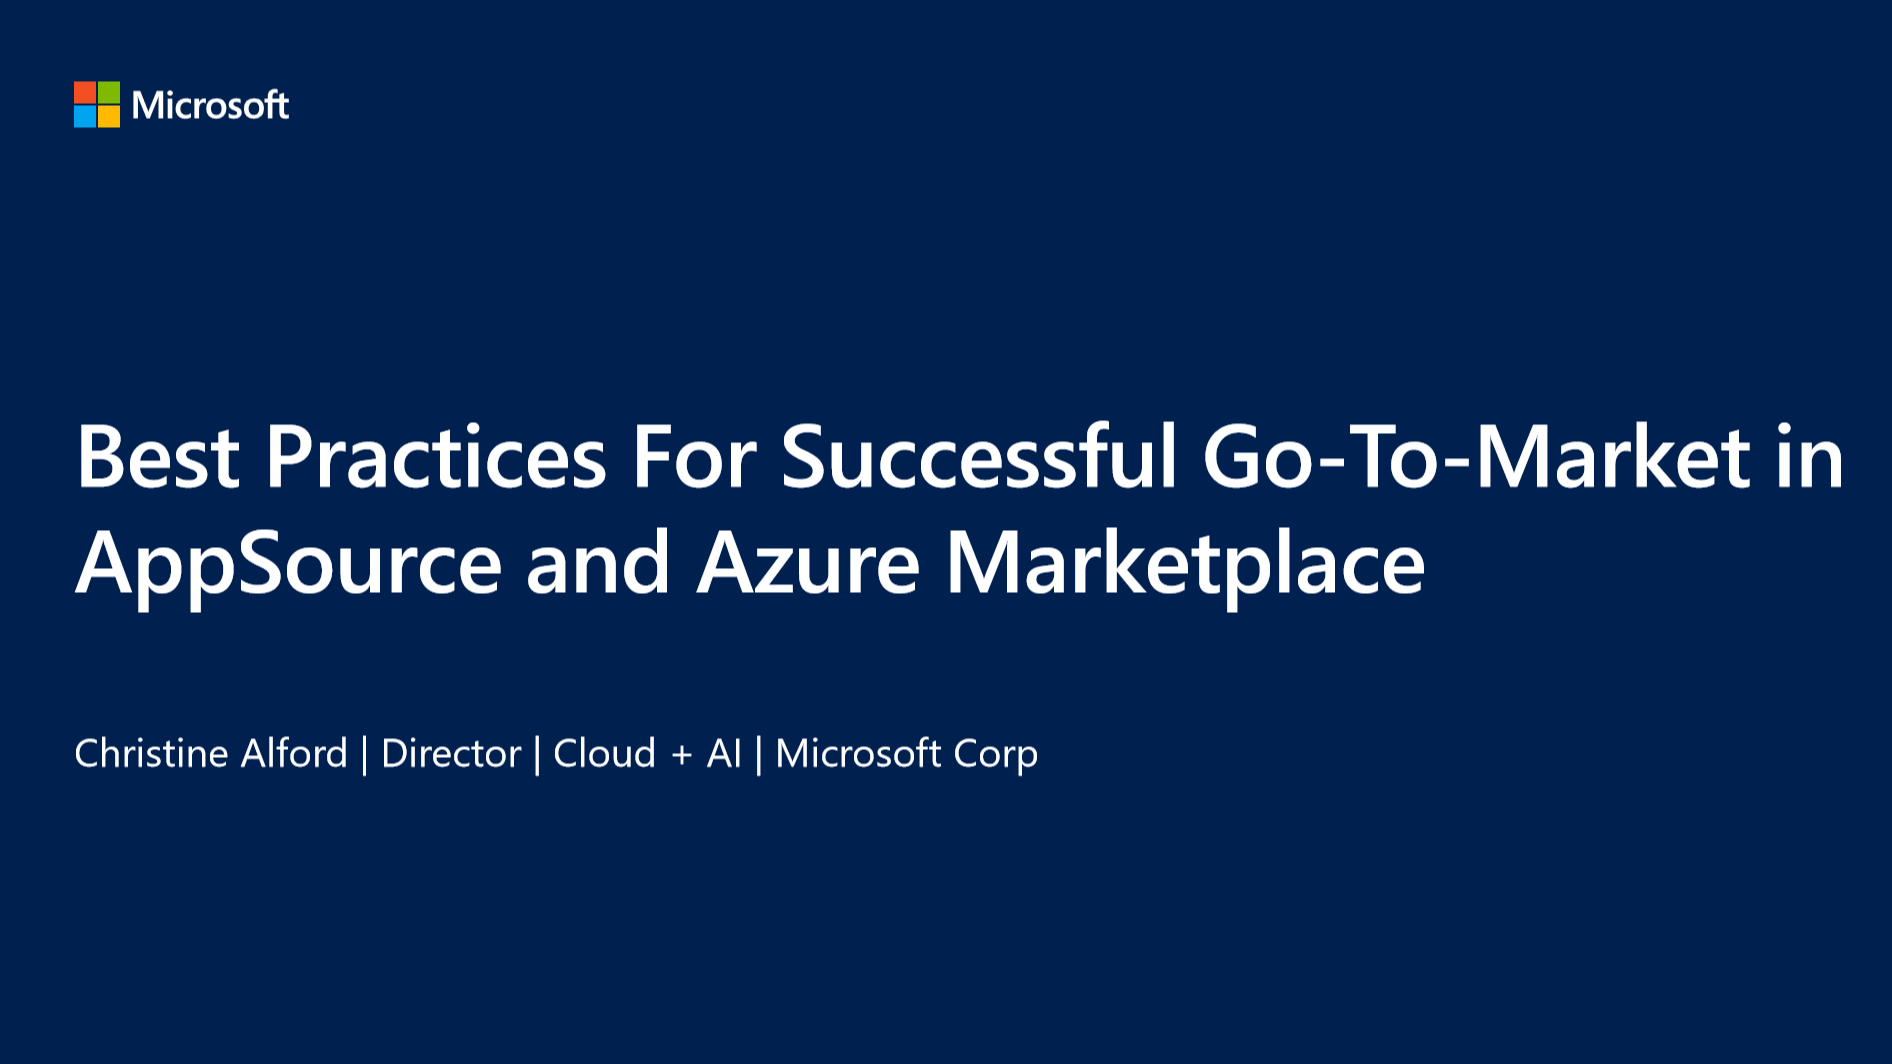 Go-To-Market Best Practices in Azure Marketplace and AppSource